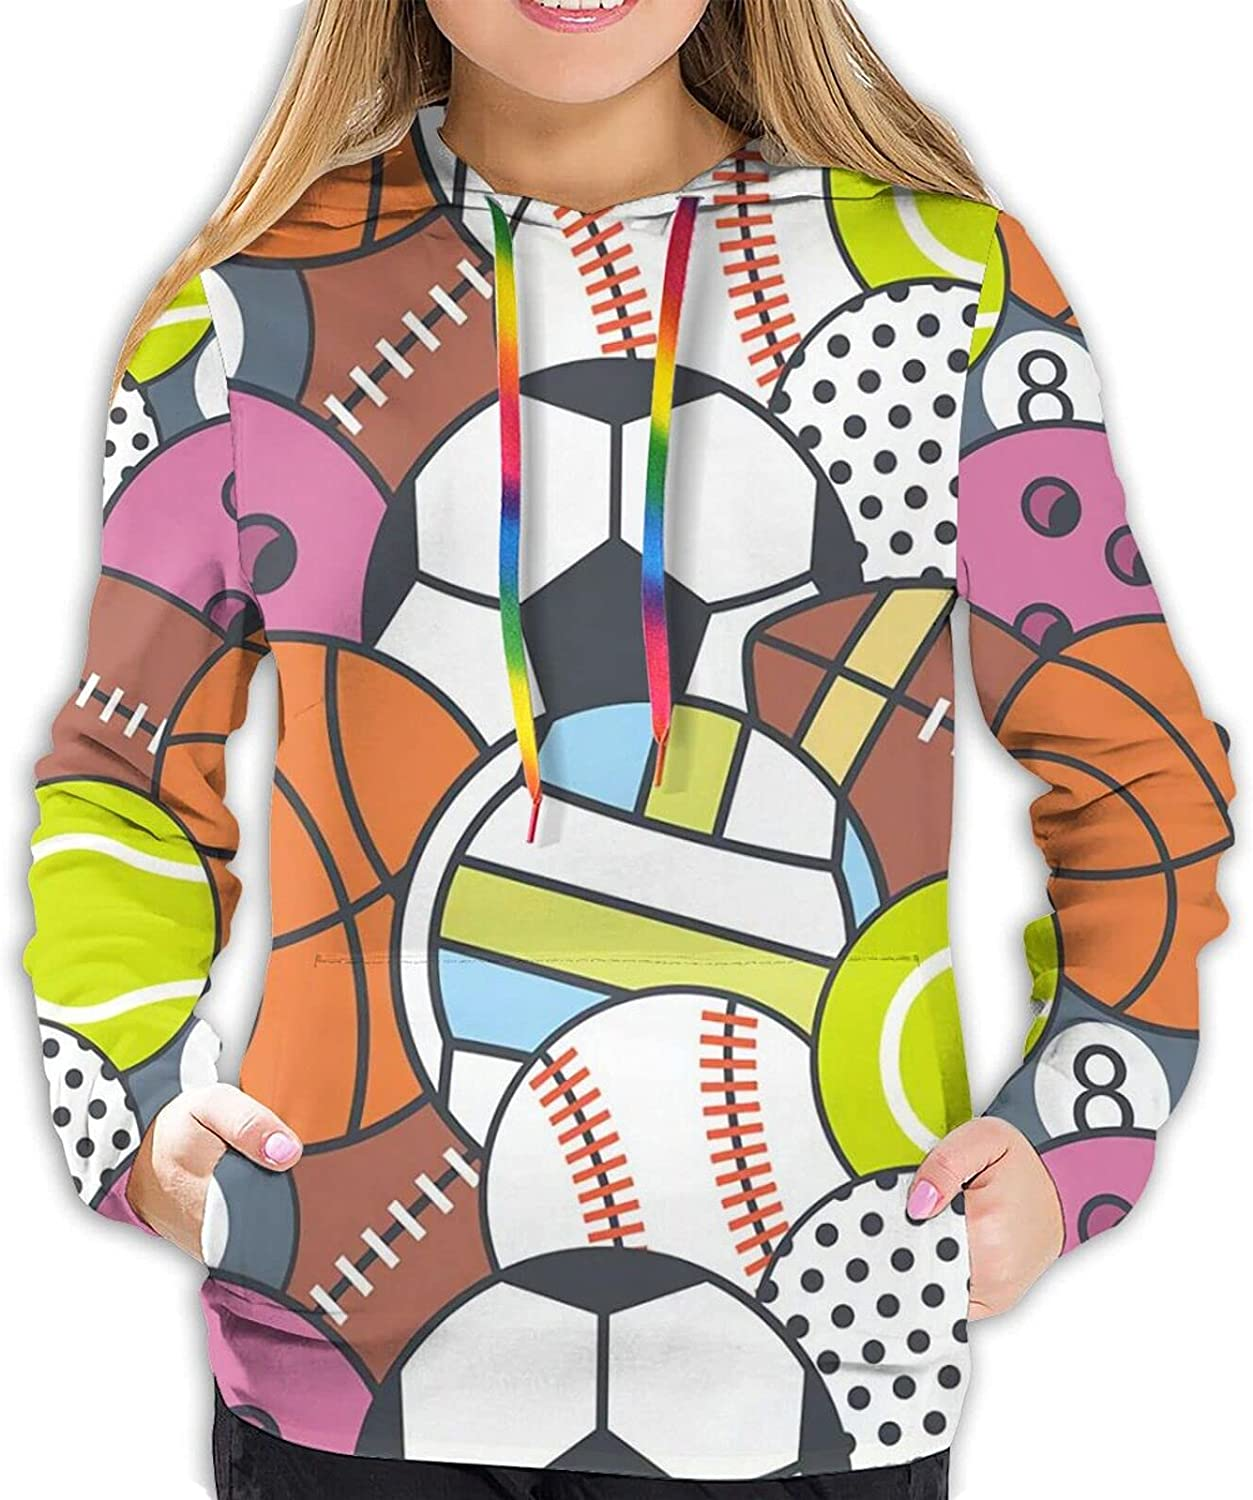 Max 44% OFF Stylish Max 75% OFF Ball games 3 Women Hoodie Print Playing 3D Swe Graphic